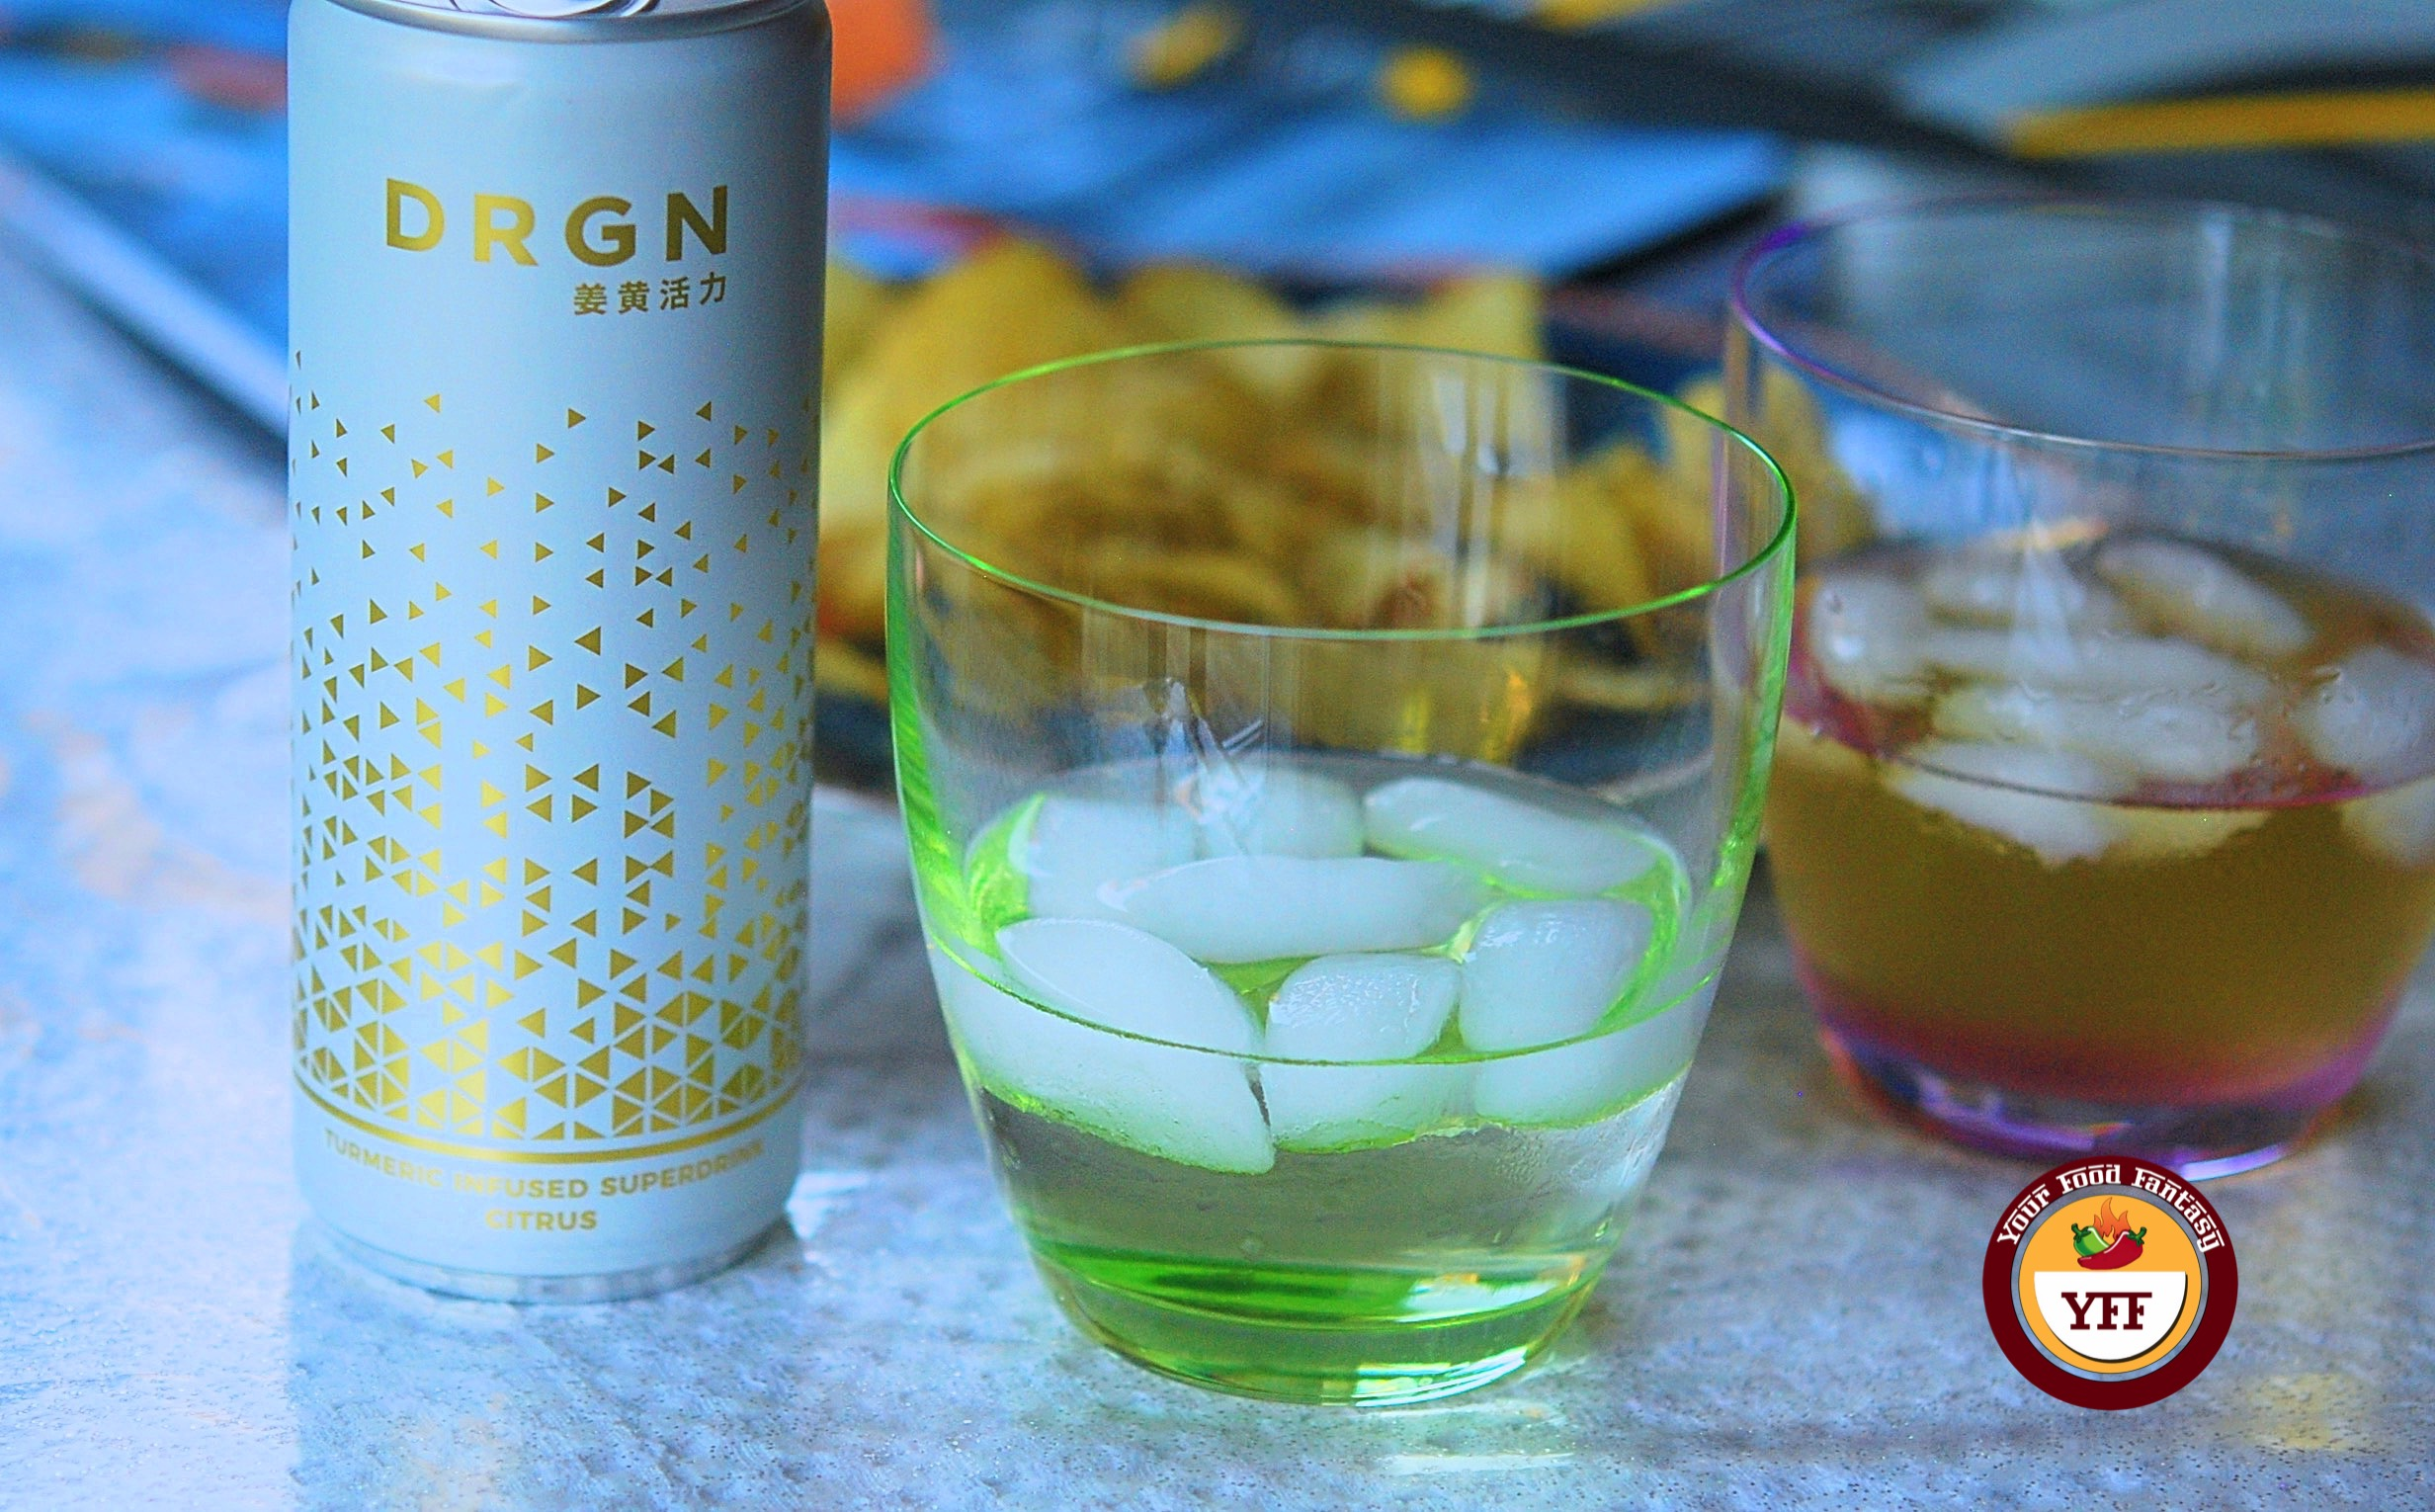 DRGN Superdrink review by Your Food Fantasy